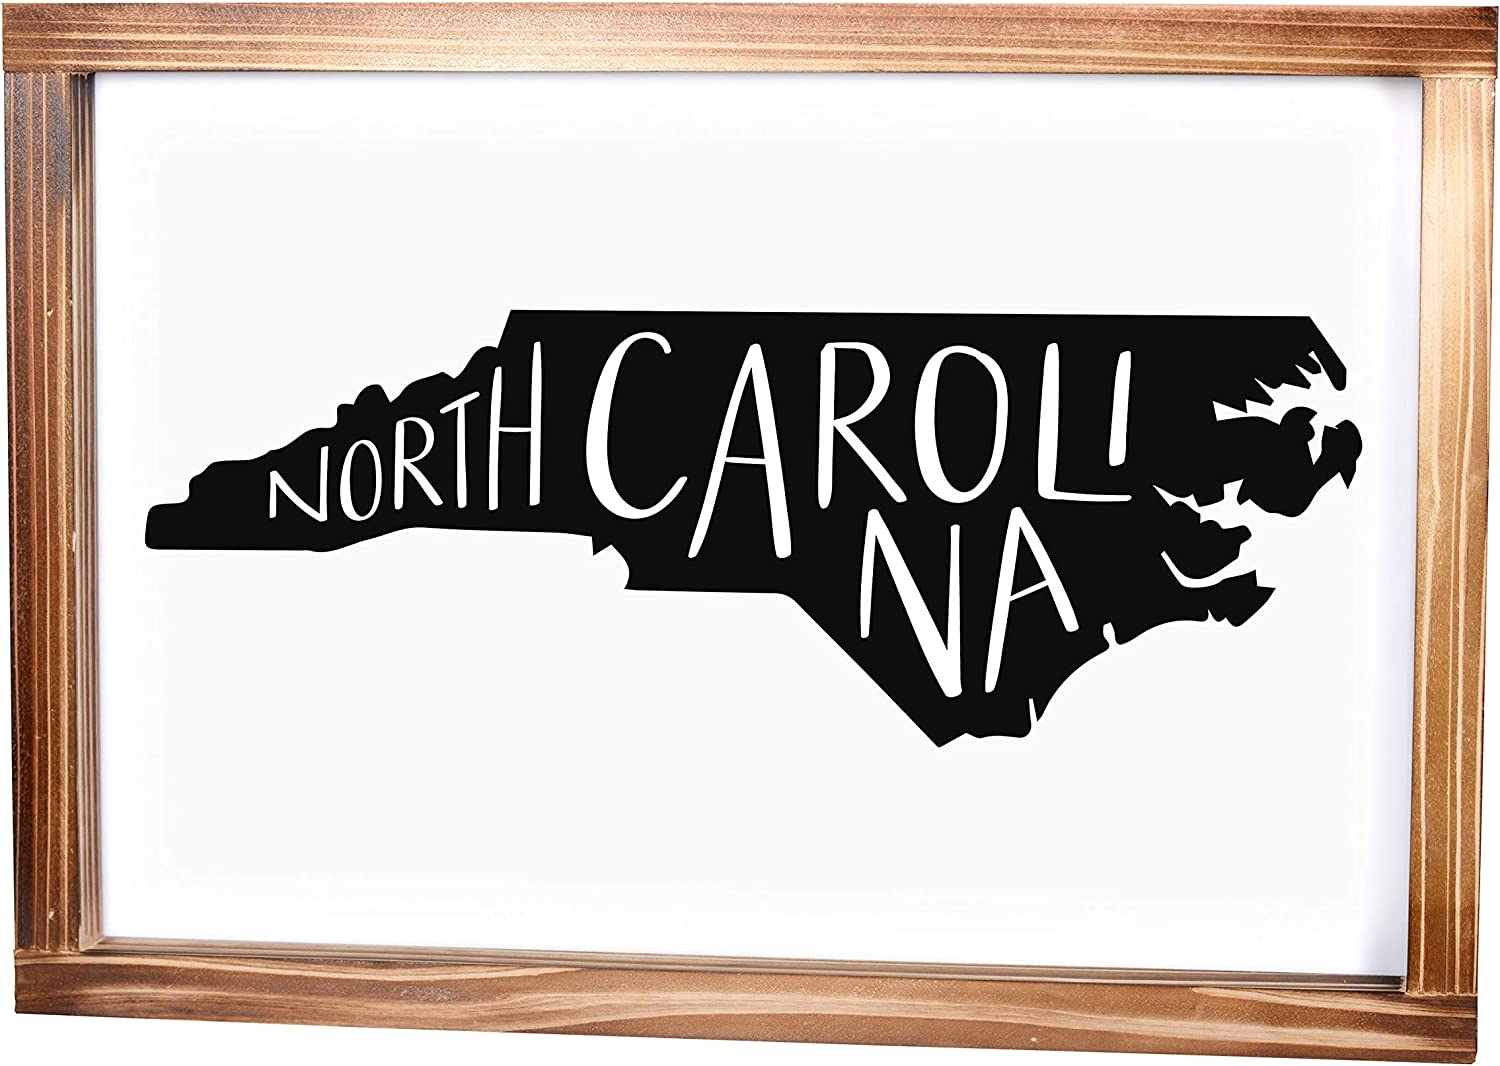 North Carolina Sign - Rustic Farmhouse Decor For The Home - North Carolina State Sign, Modern Farmhouse State Gift, North Carolina Wall Decor, State Souvenir With Solid Wood Frame 11x16 Inch